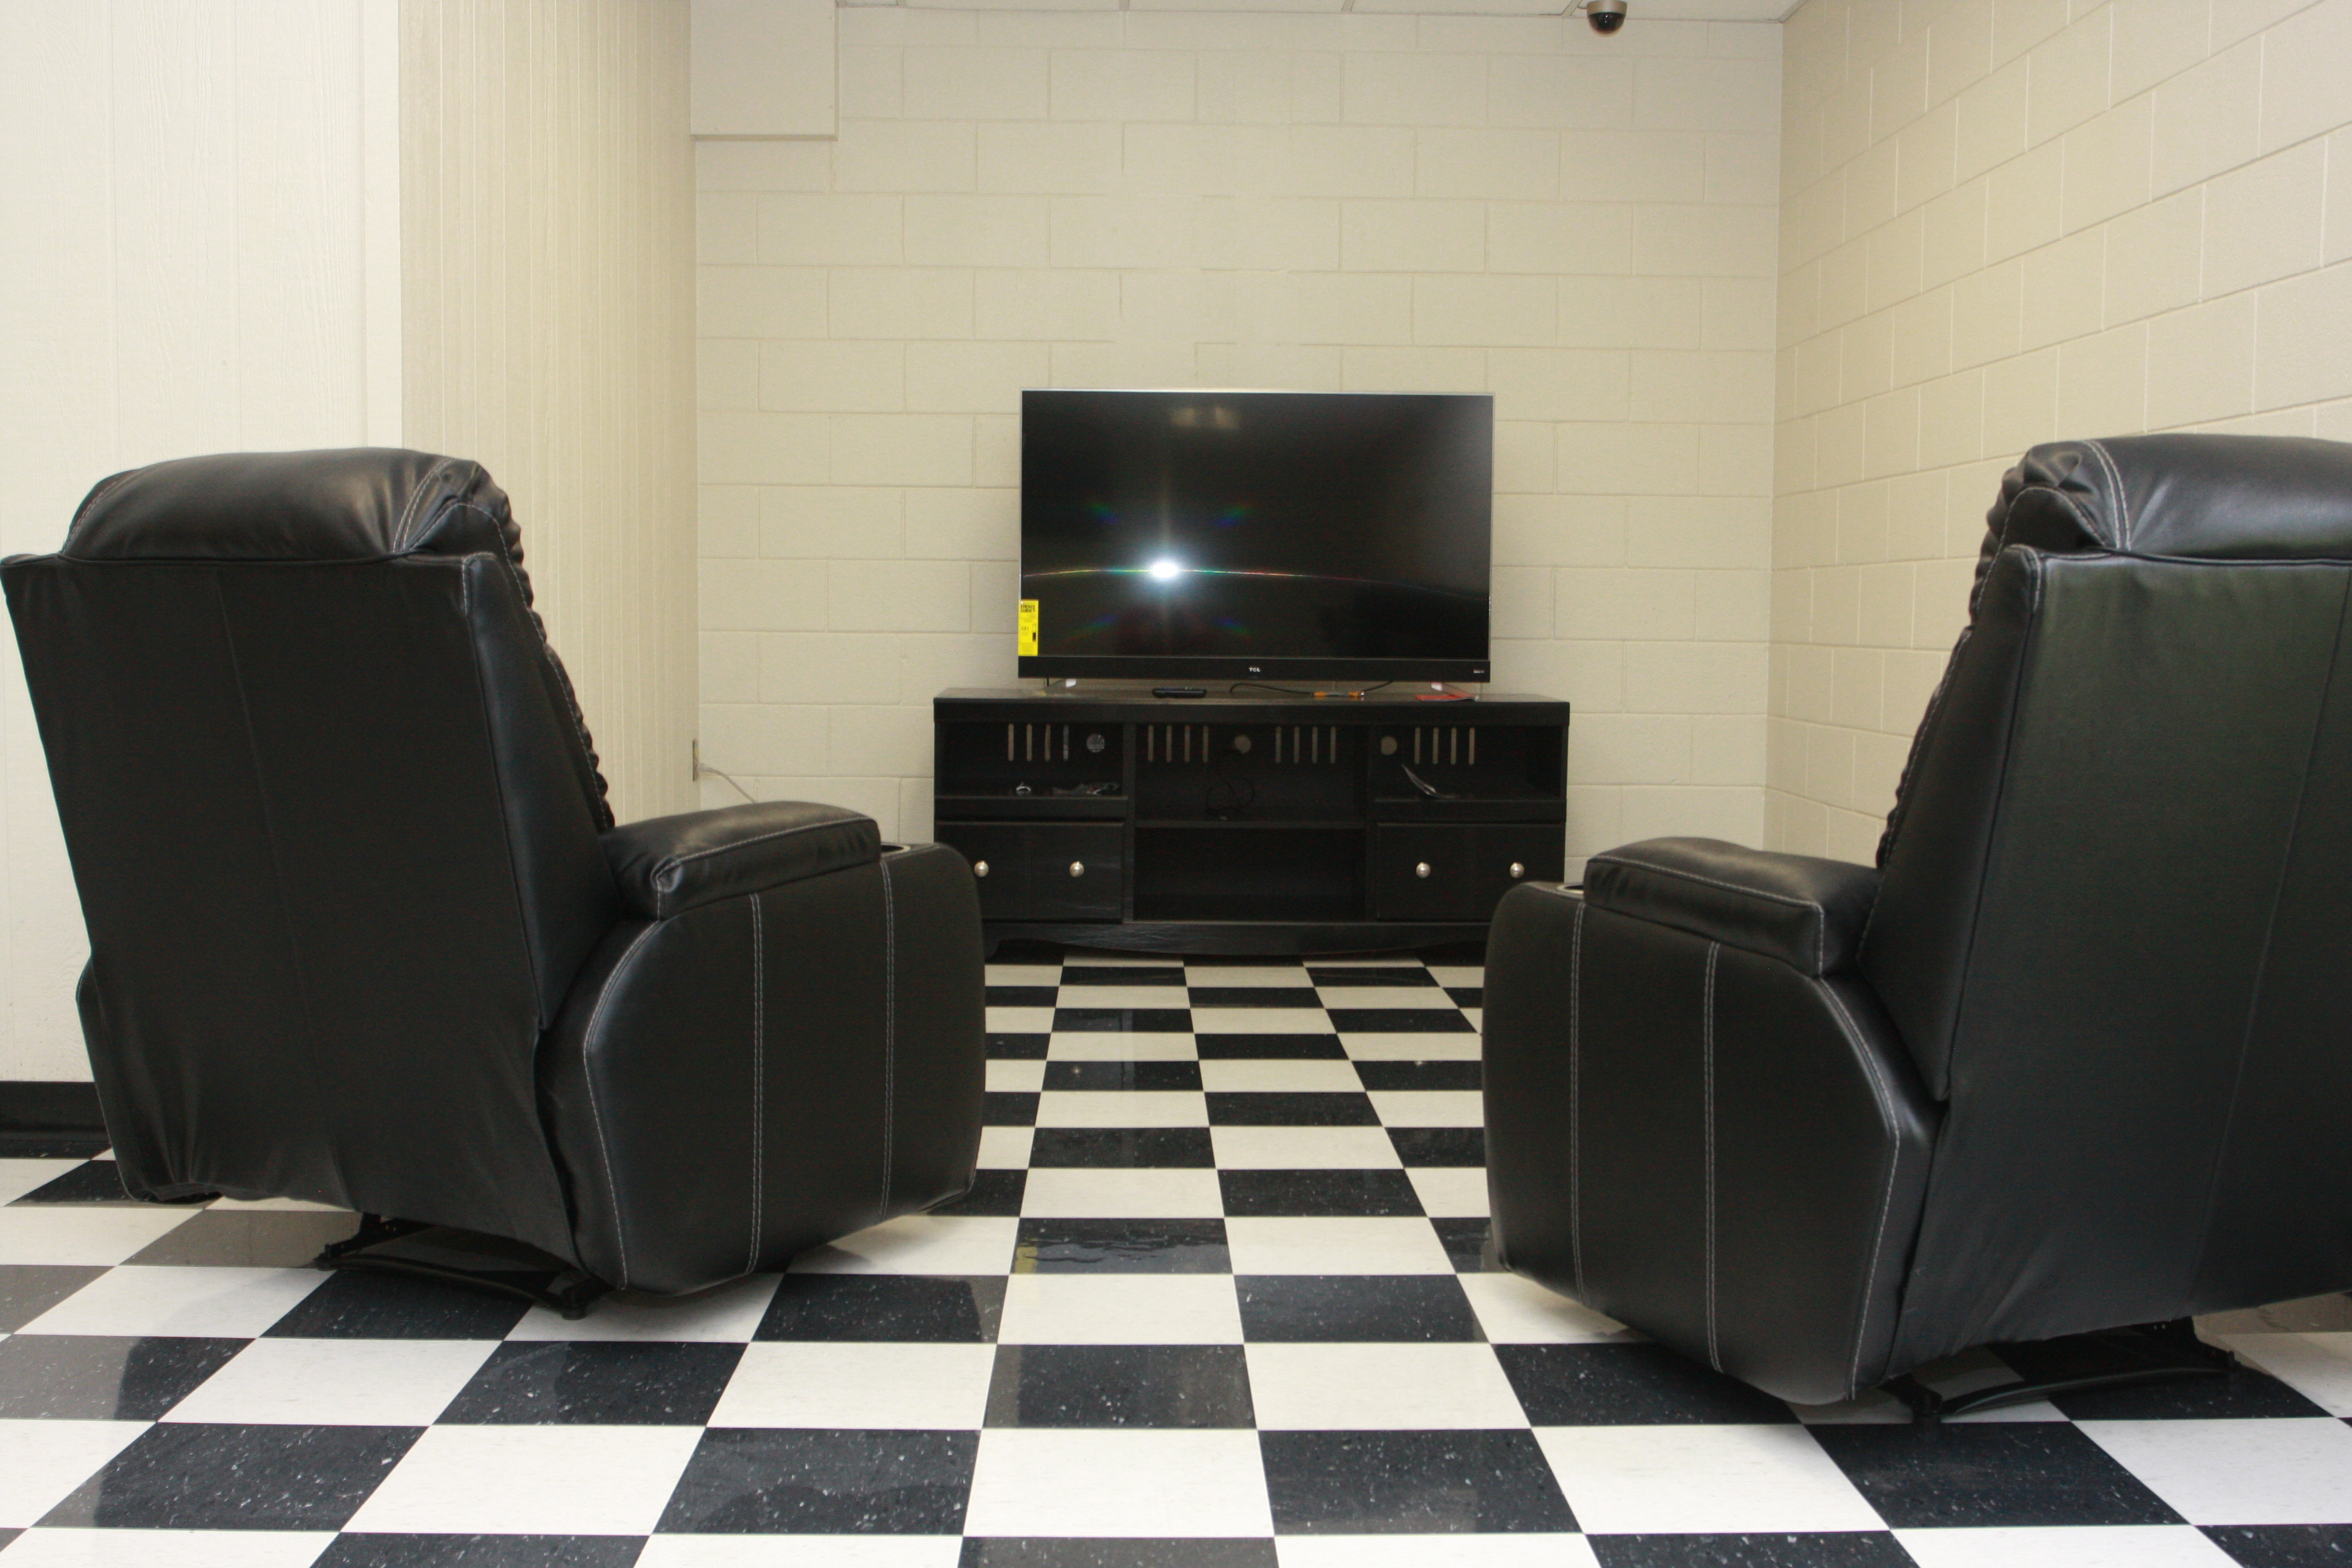 New leather recliners facing an entertainment center with LCD television in the recreation area of the Conq Corral